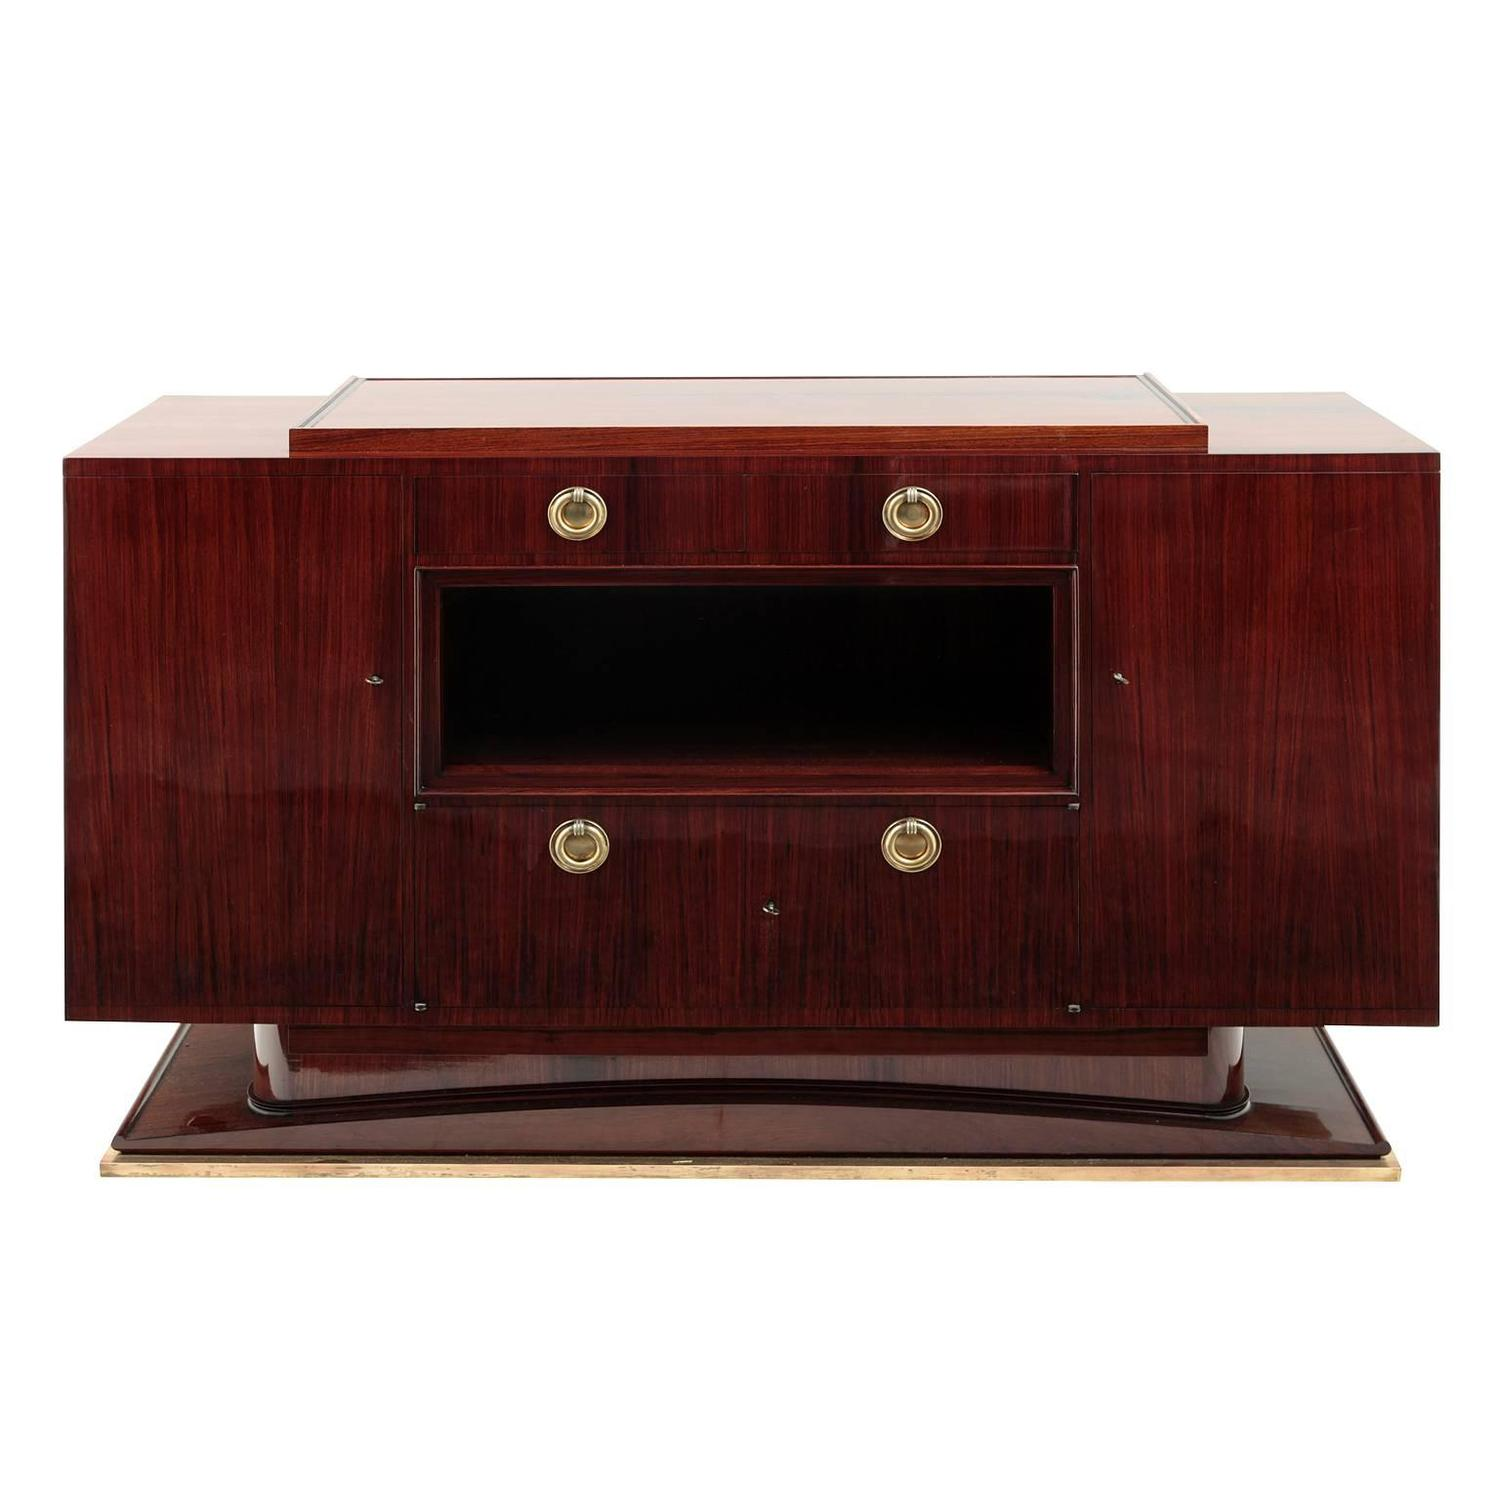 Sideboard art deco france circa 1925 at 1stdibs for Deco francaise